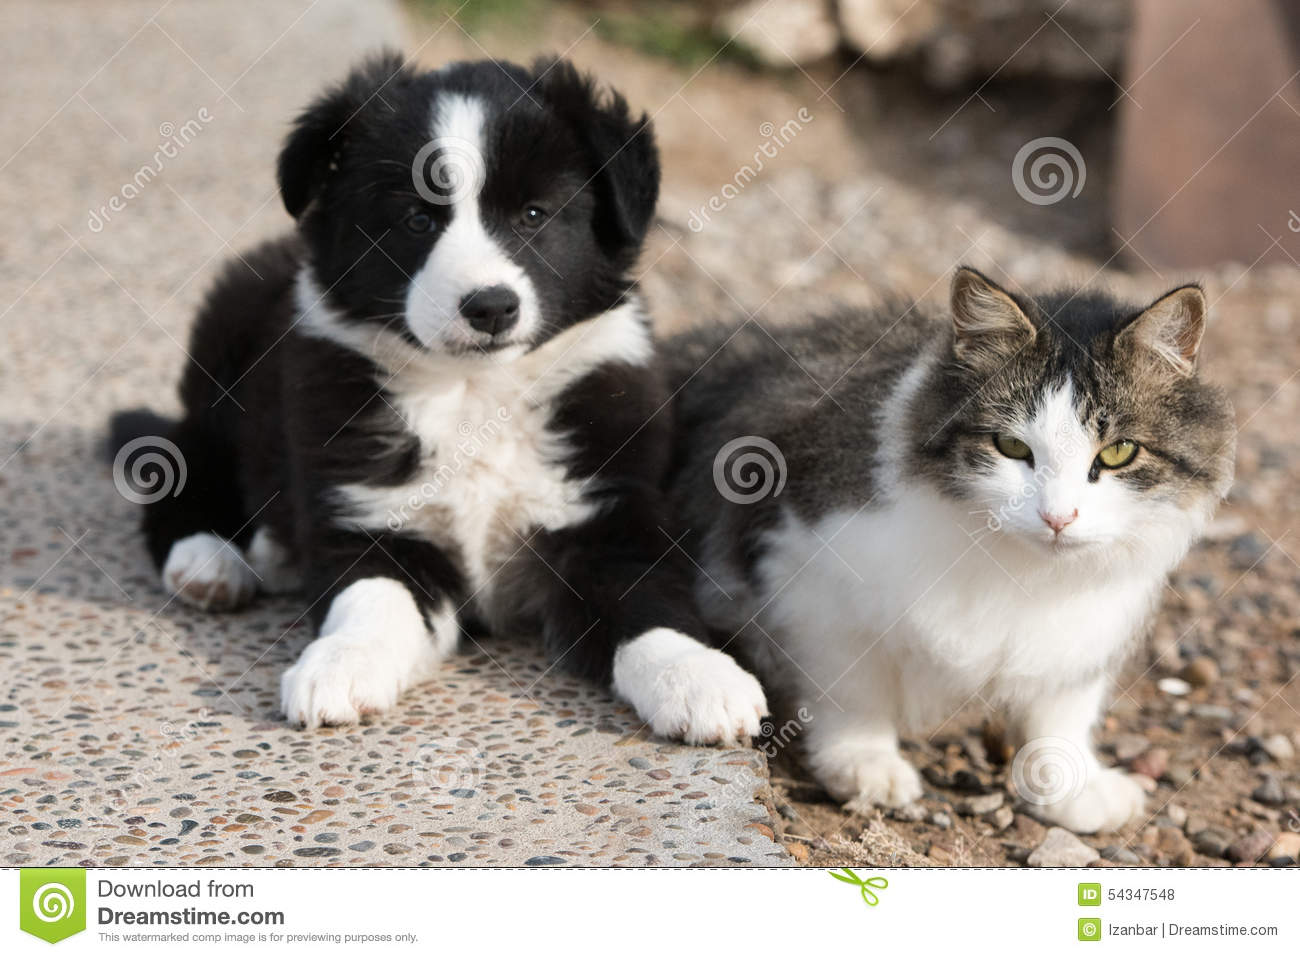 Border collie puppy dog portrait with a cat